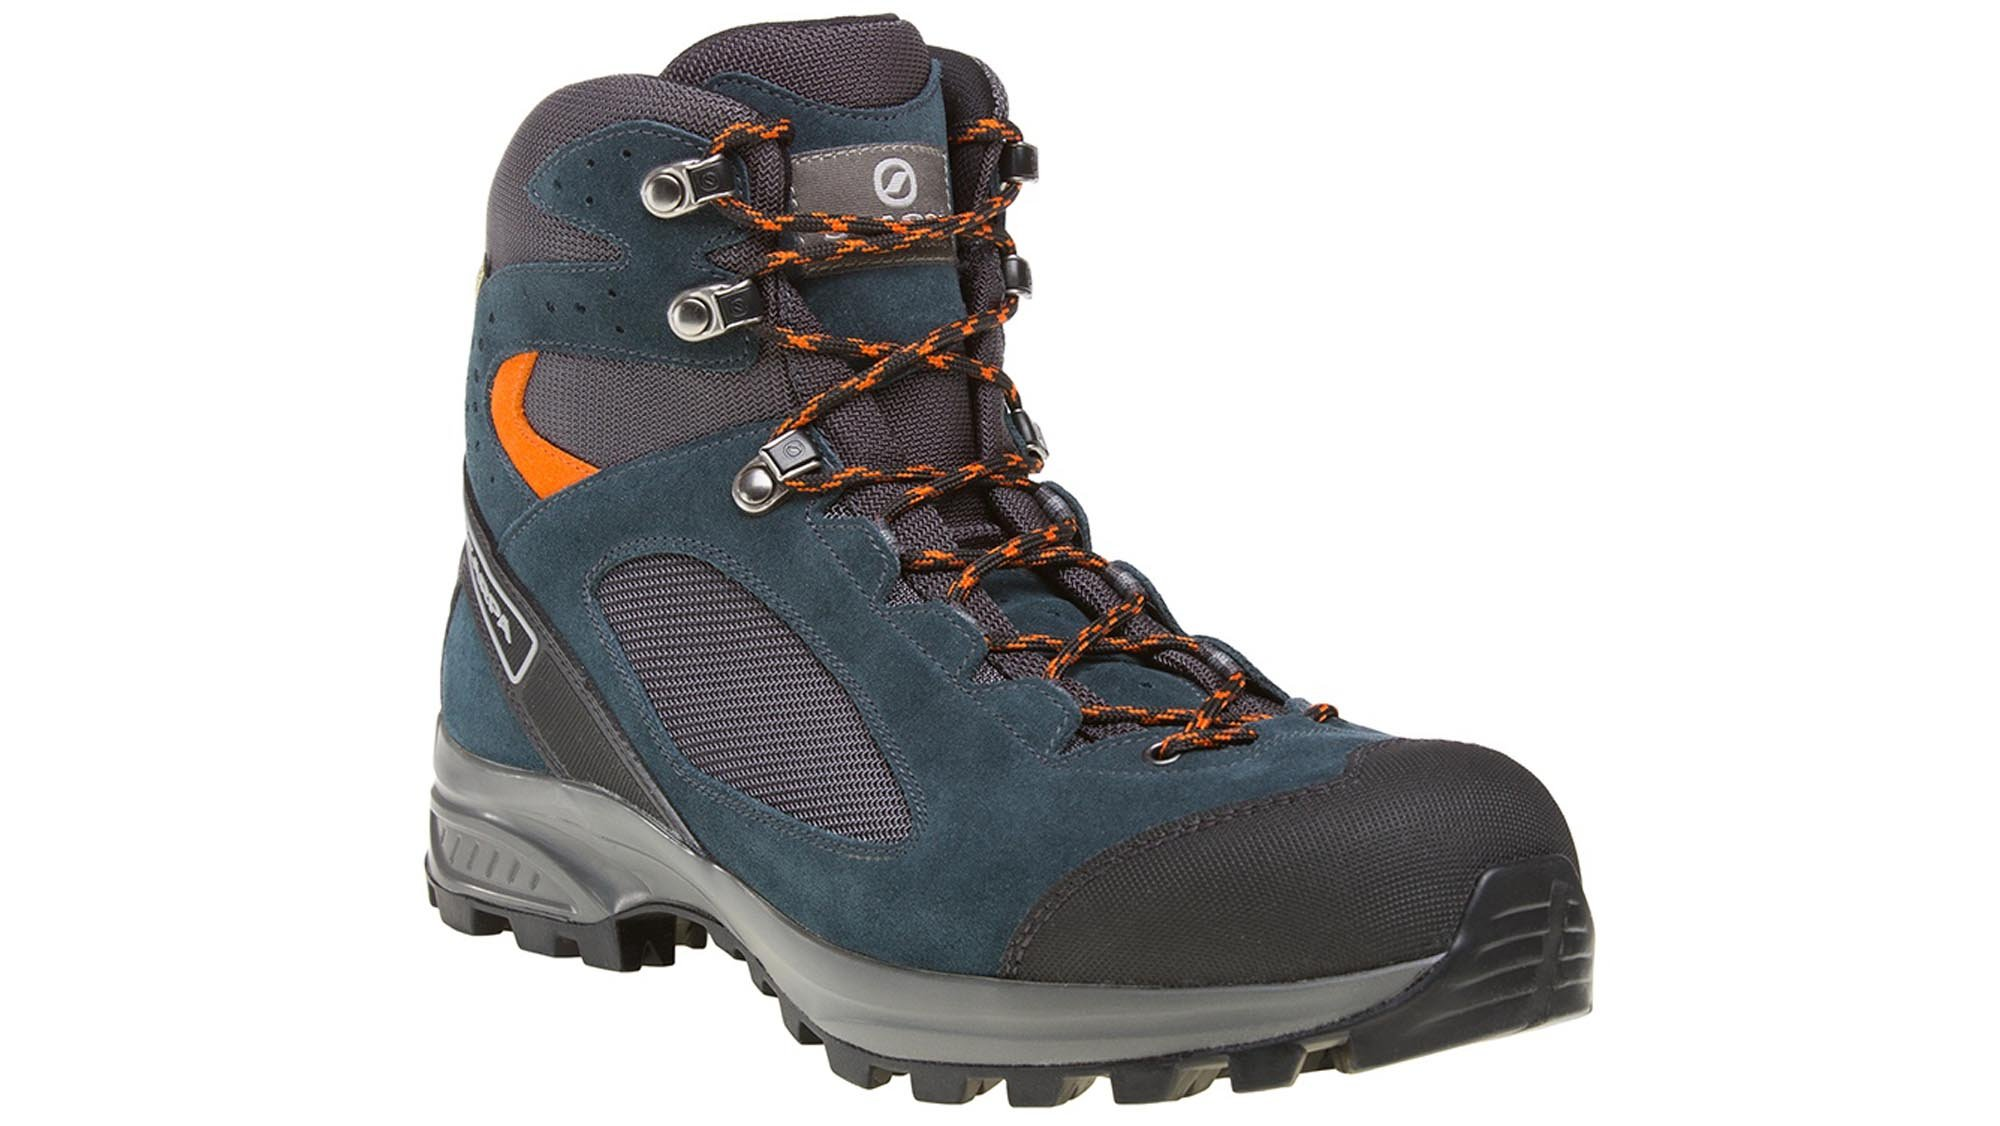 Best hiking boots 2019  Walking boots for men and women from £38 ... 5e7d55acd2